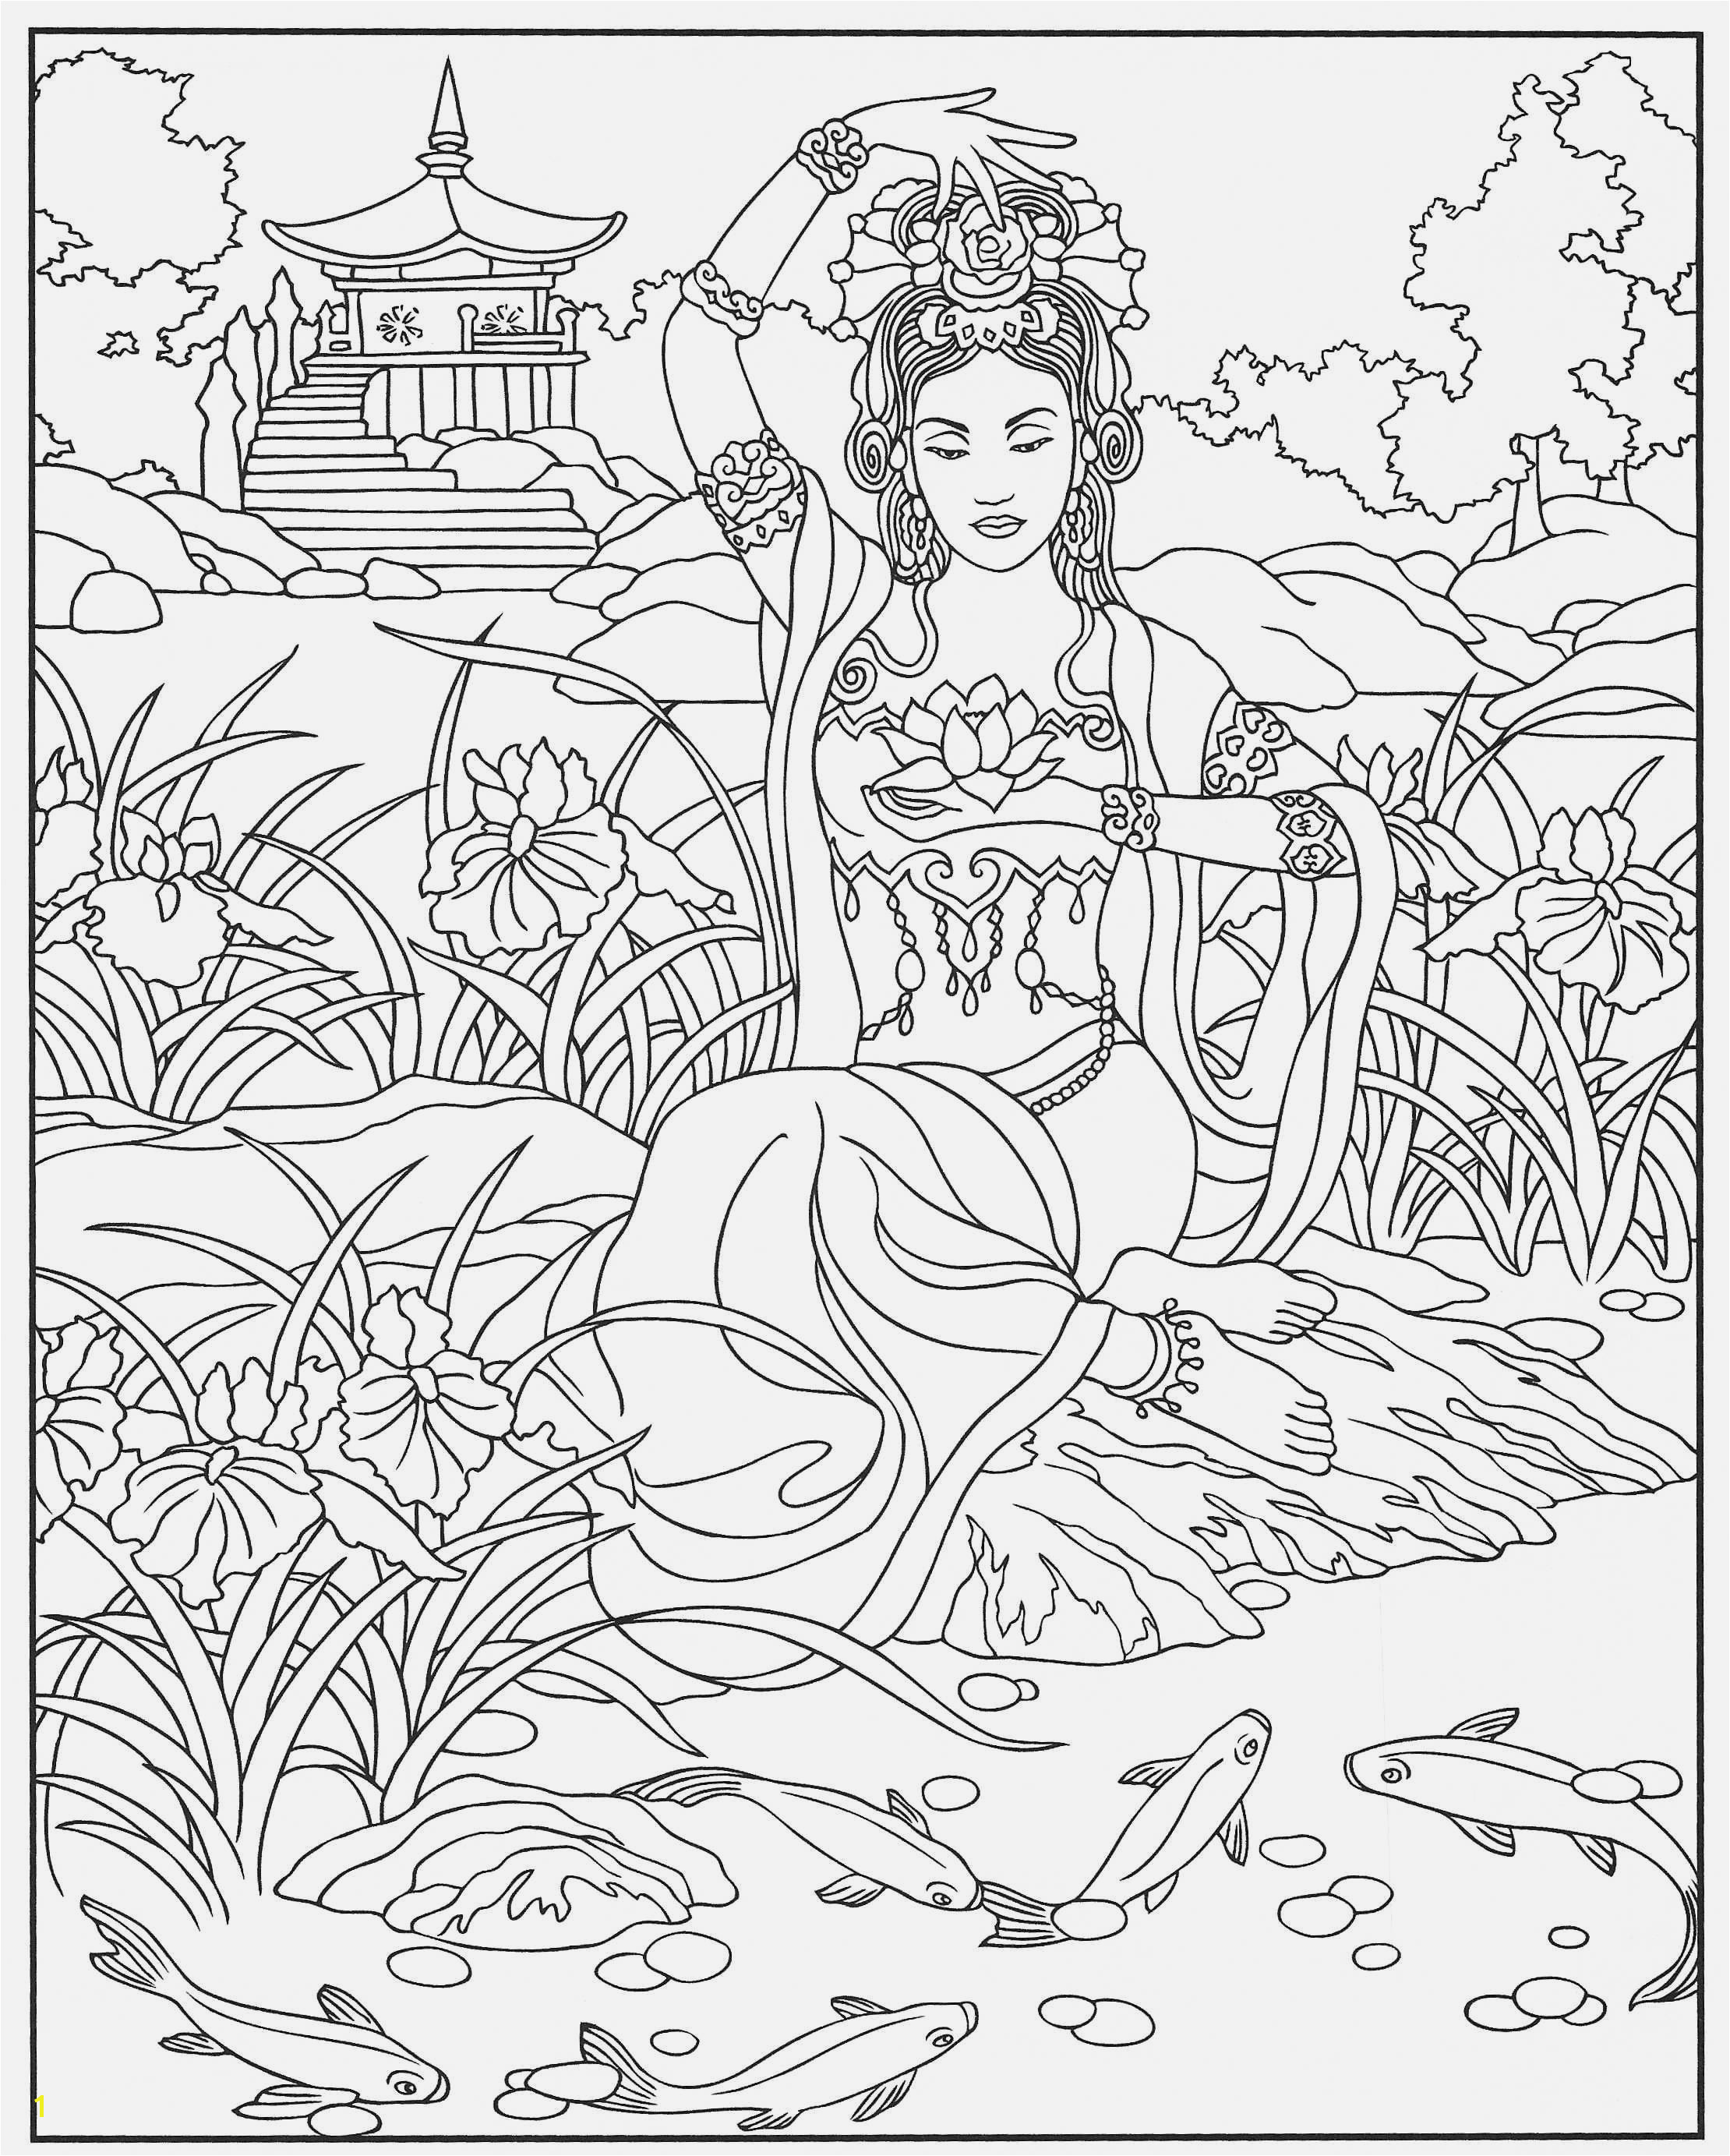 Pretty Coloring Pages Printable Coloring Pages Beautiful Girl Fresh Coloring Pages for Girls Lovely Printable Cds